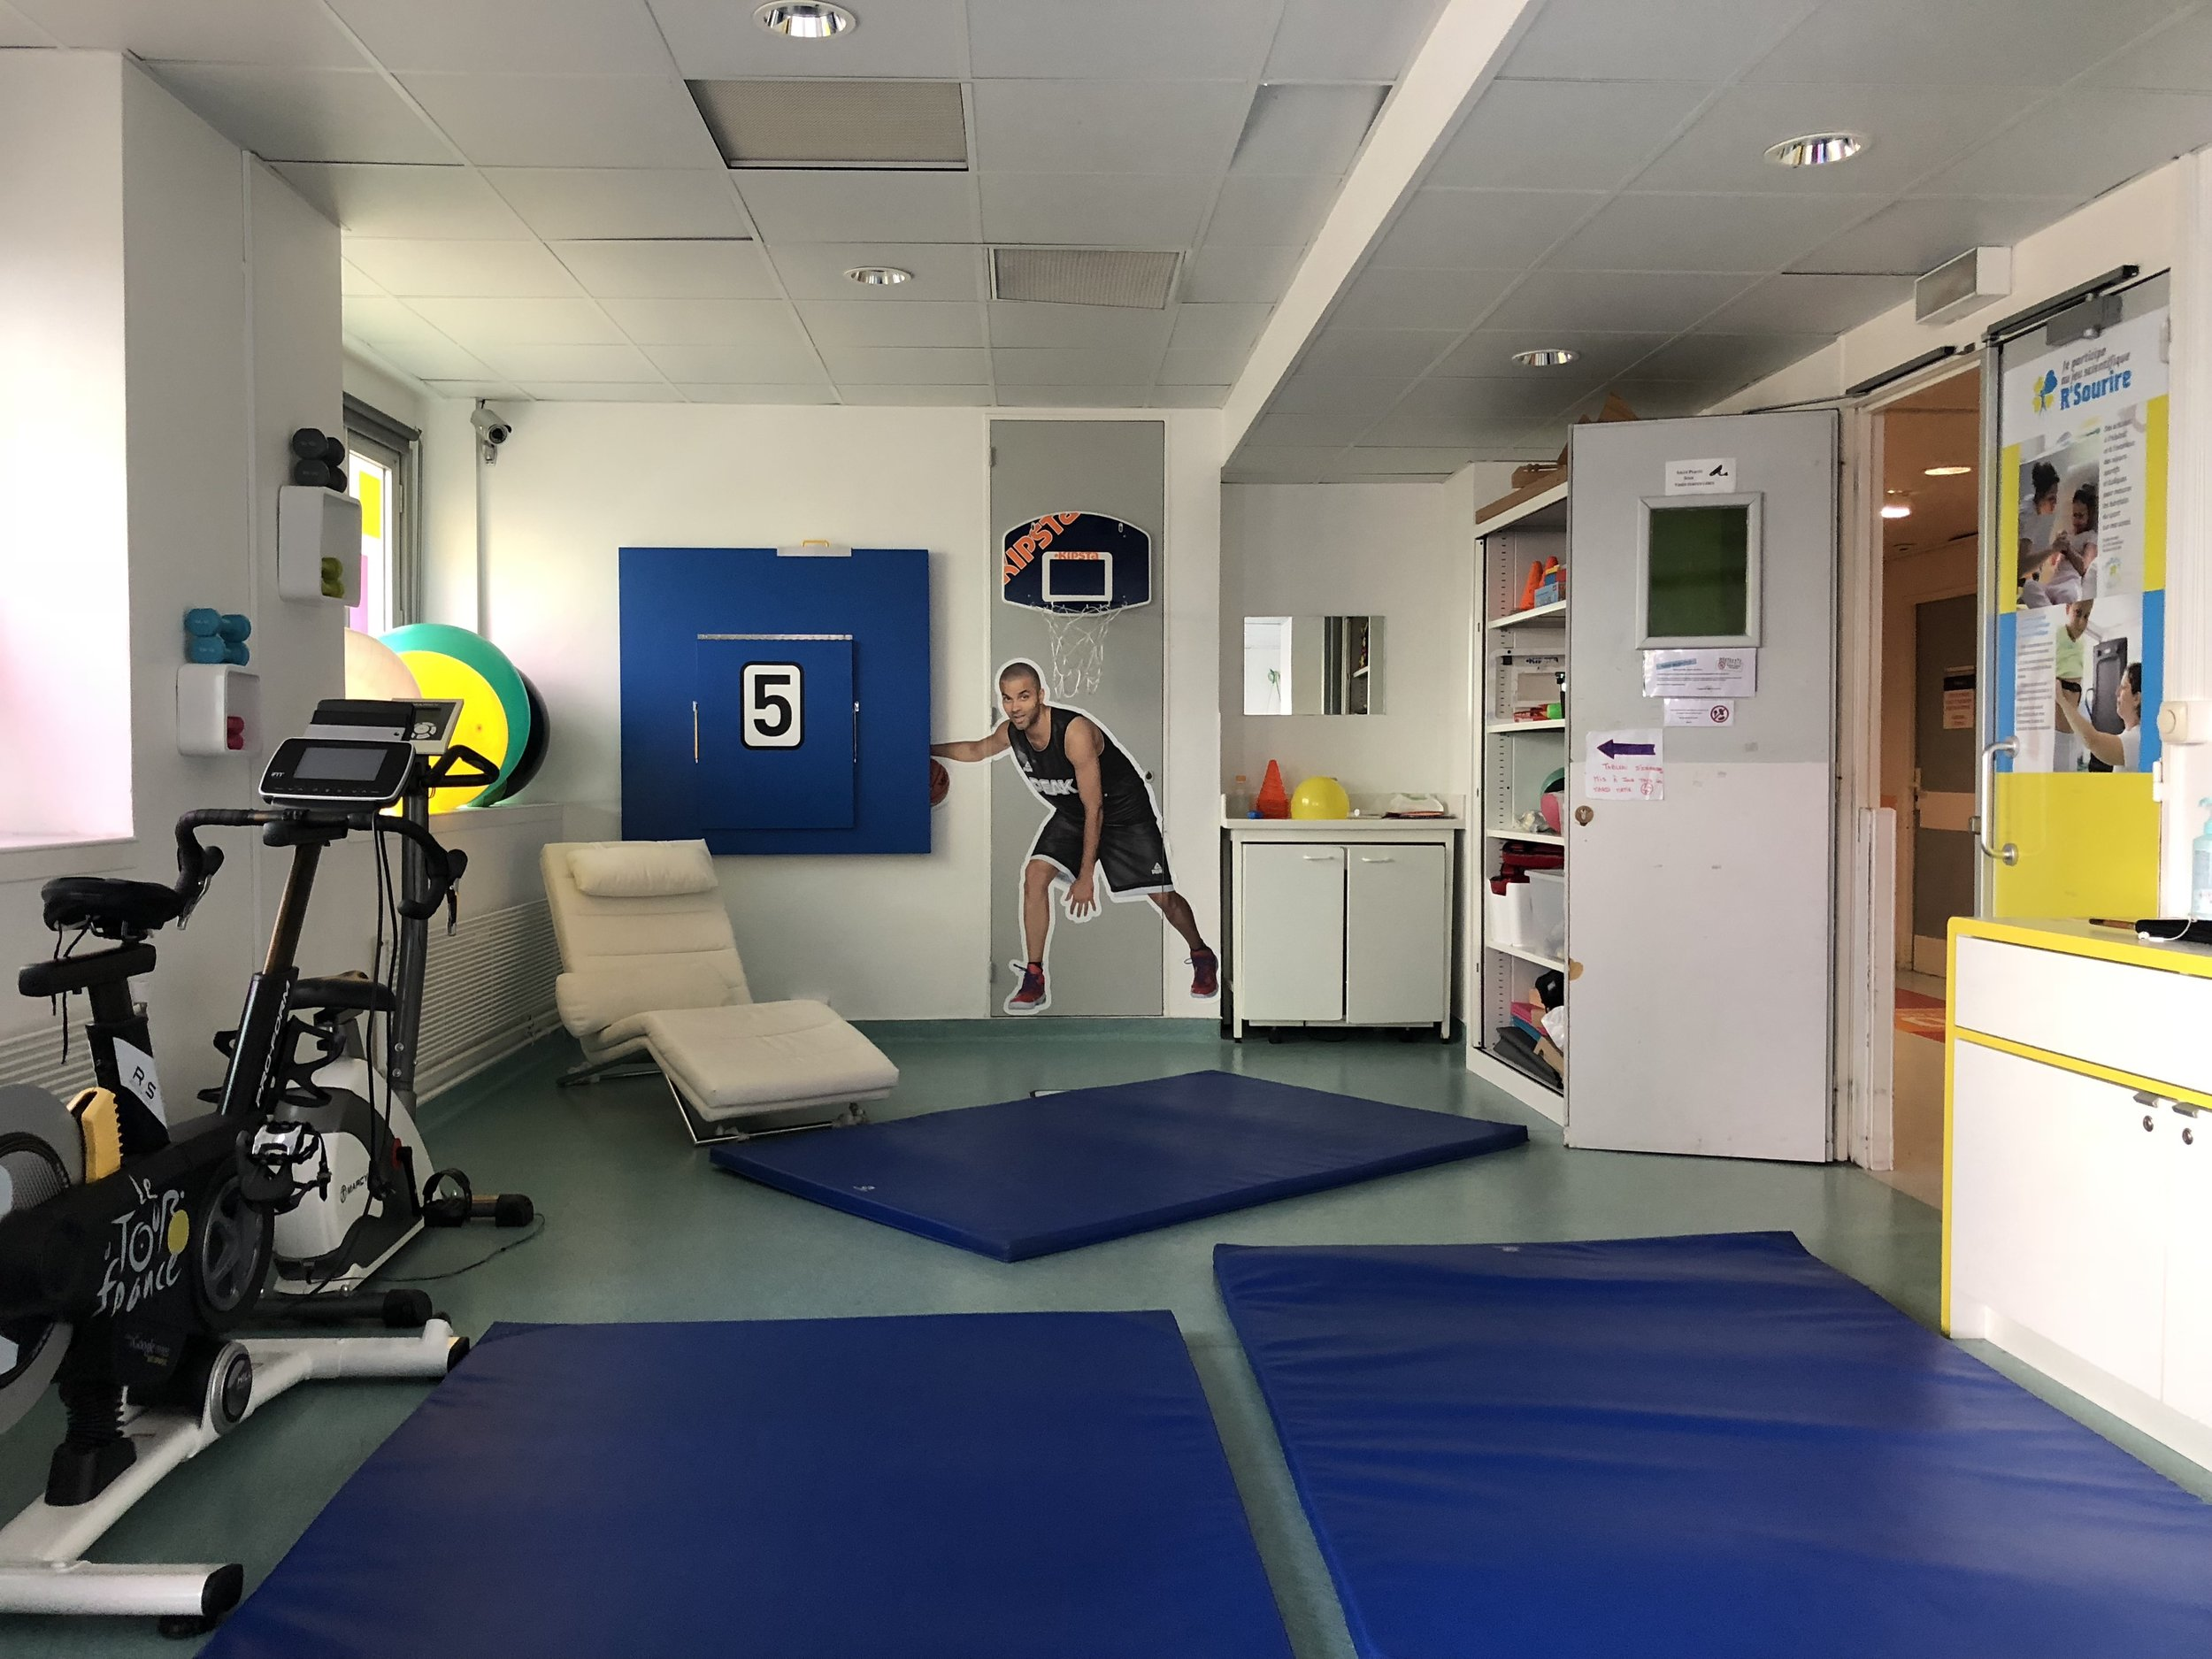 Sourire a La Vie dedicated sports facility within the oncology unit of La Timone Children Hospital in Marseille. This is the first of its kind in France.